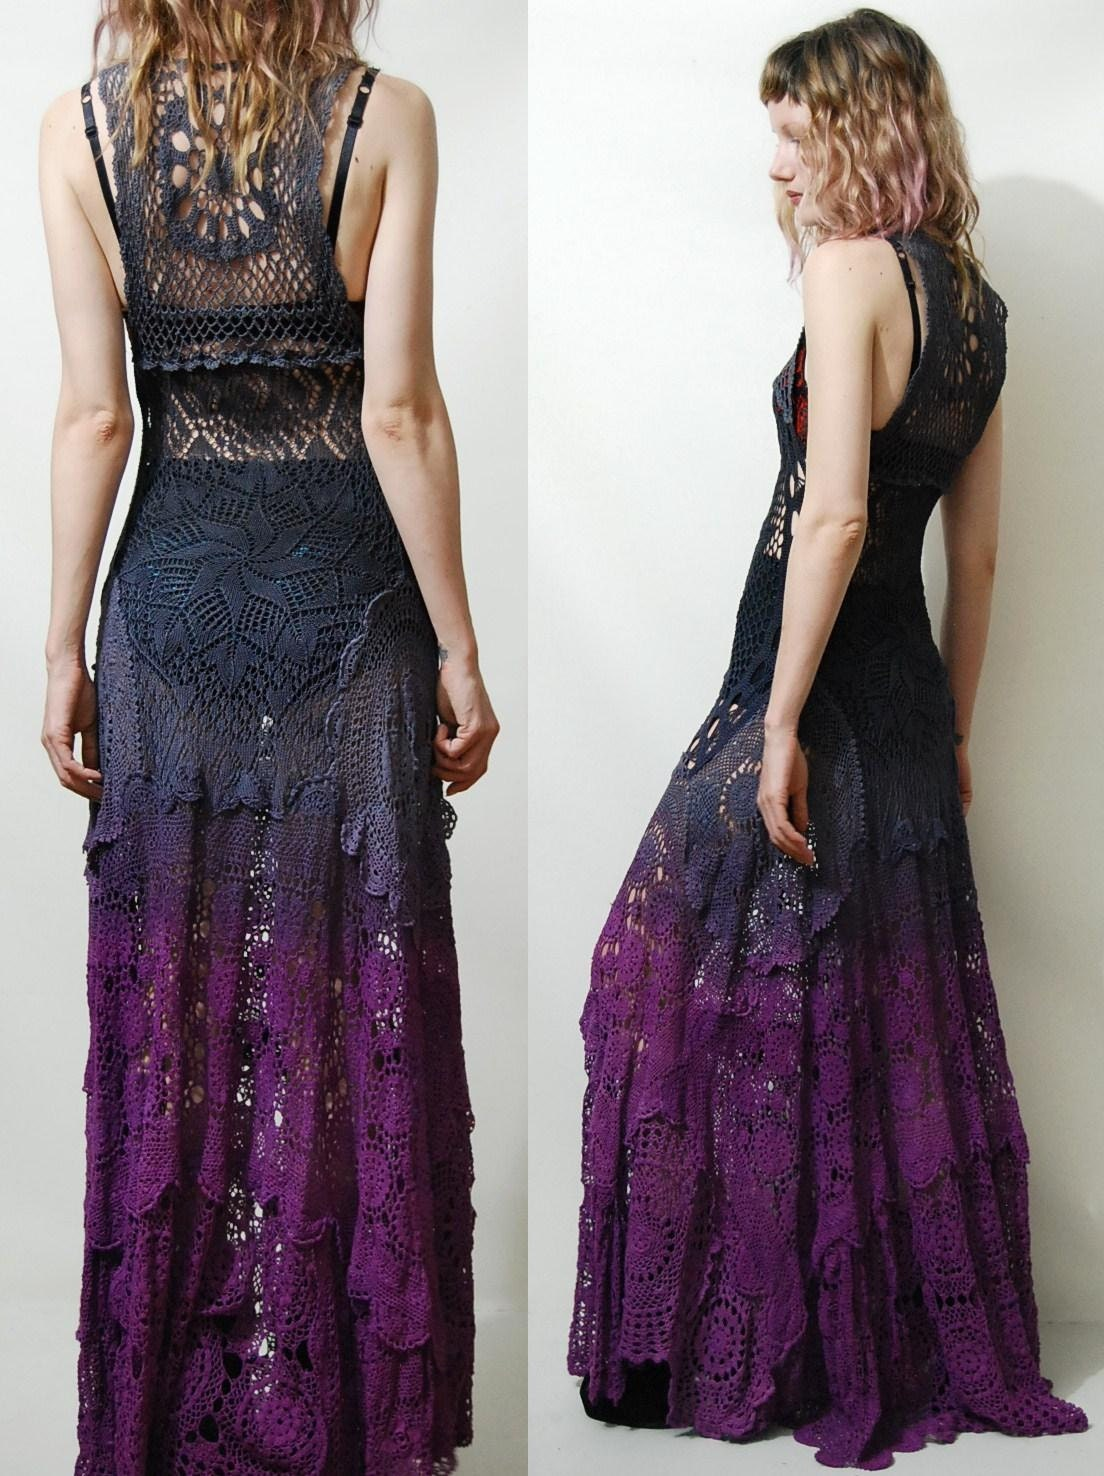 crochet dress vintage lace purple black ombre long maxi sheer. Black Bedroom Furniture Sets. Home Design Ideas